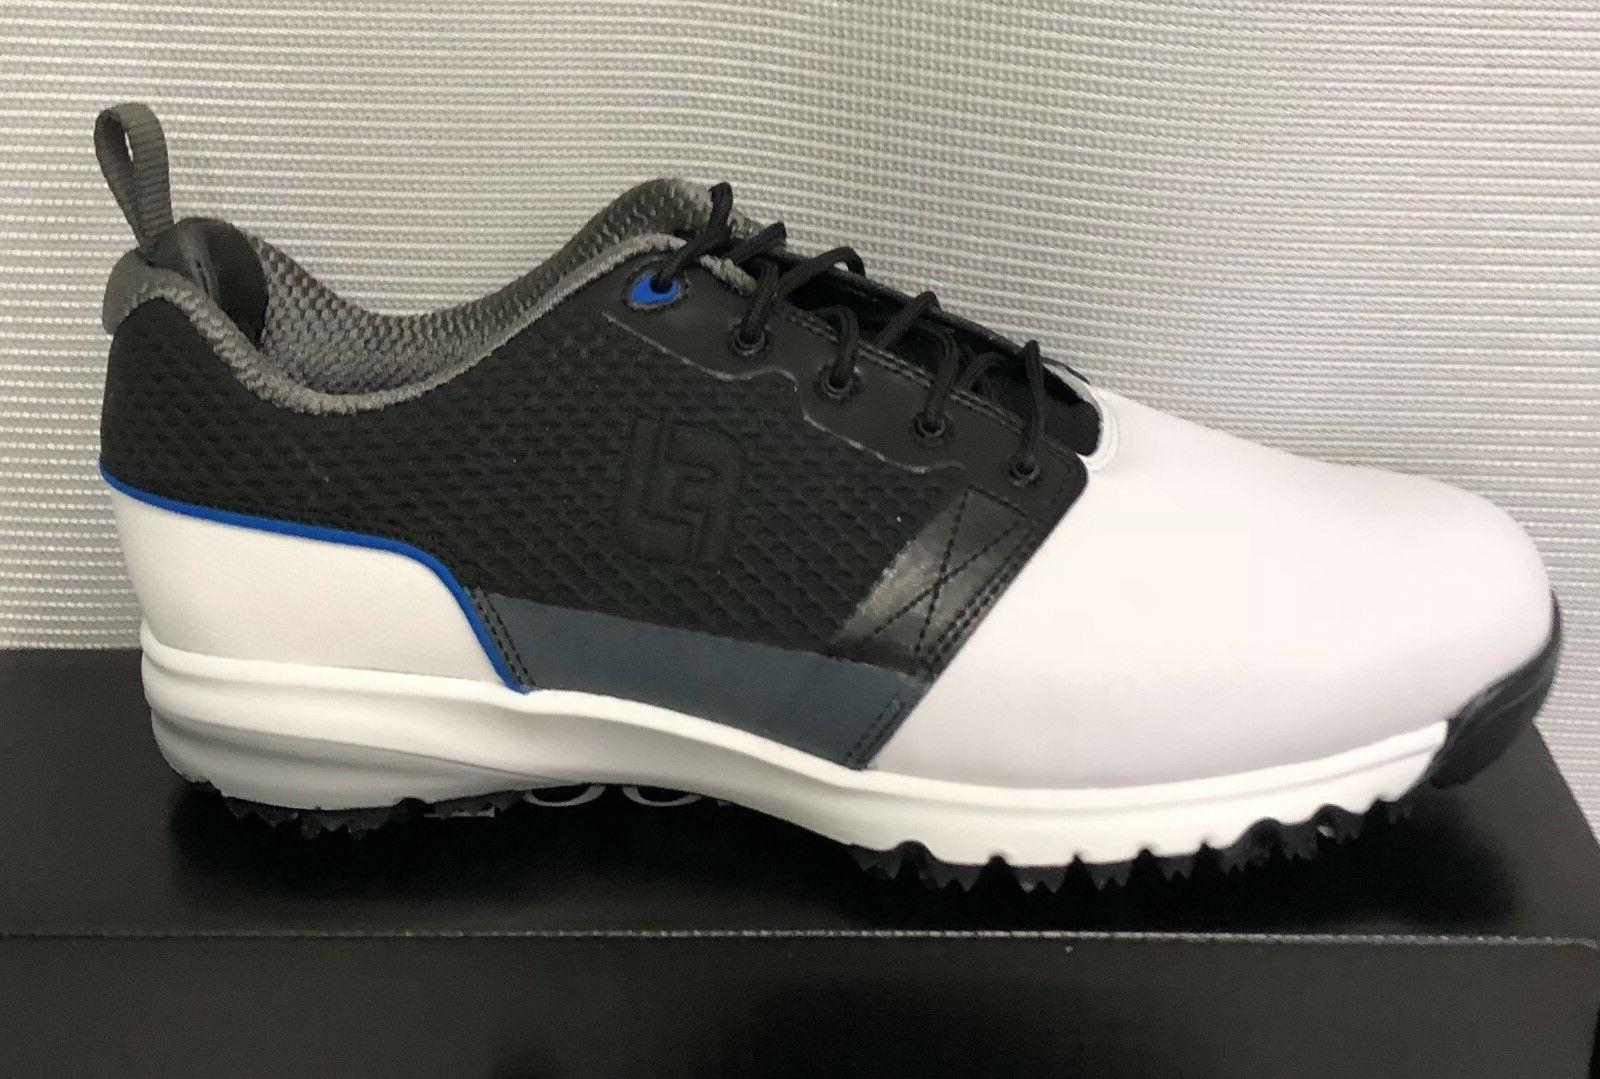 FootJoy ContourFIT Shoes - White in Box